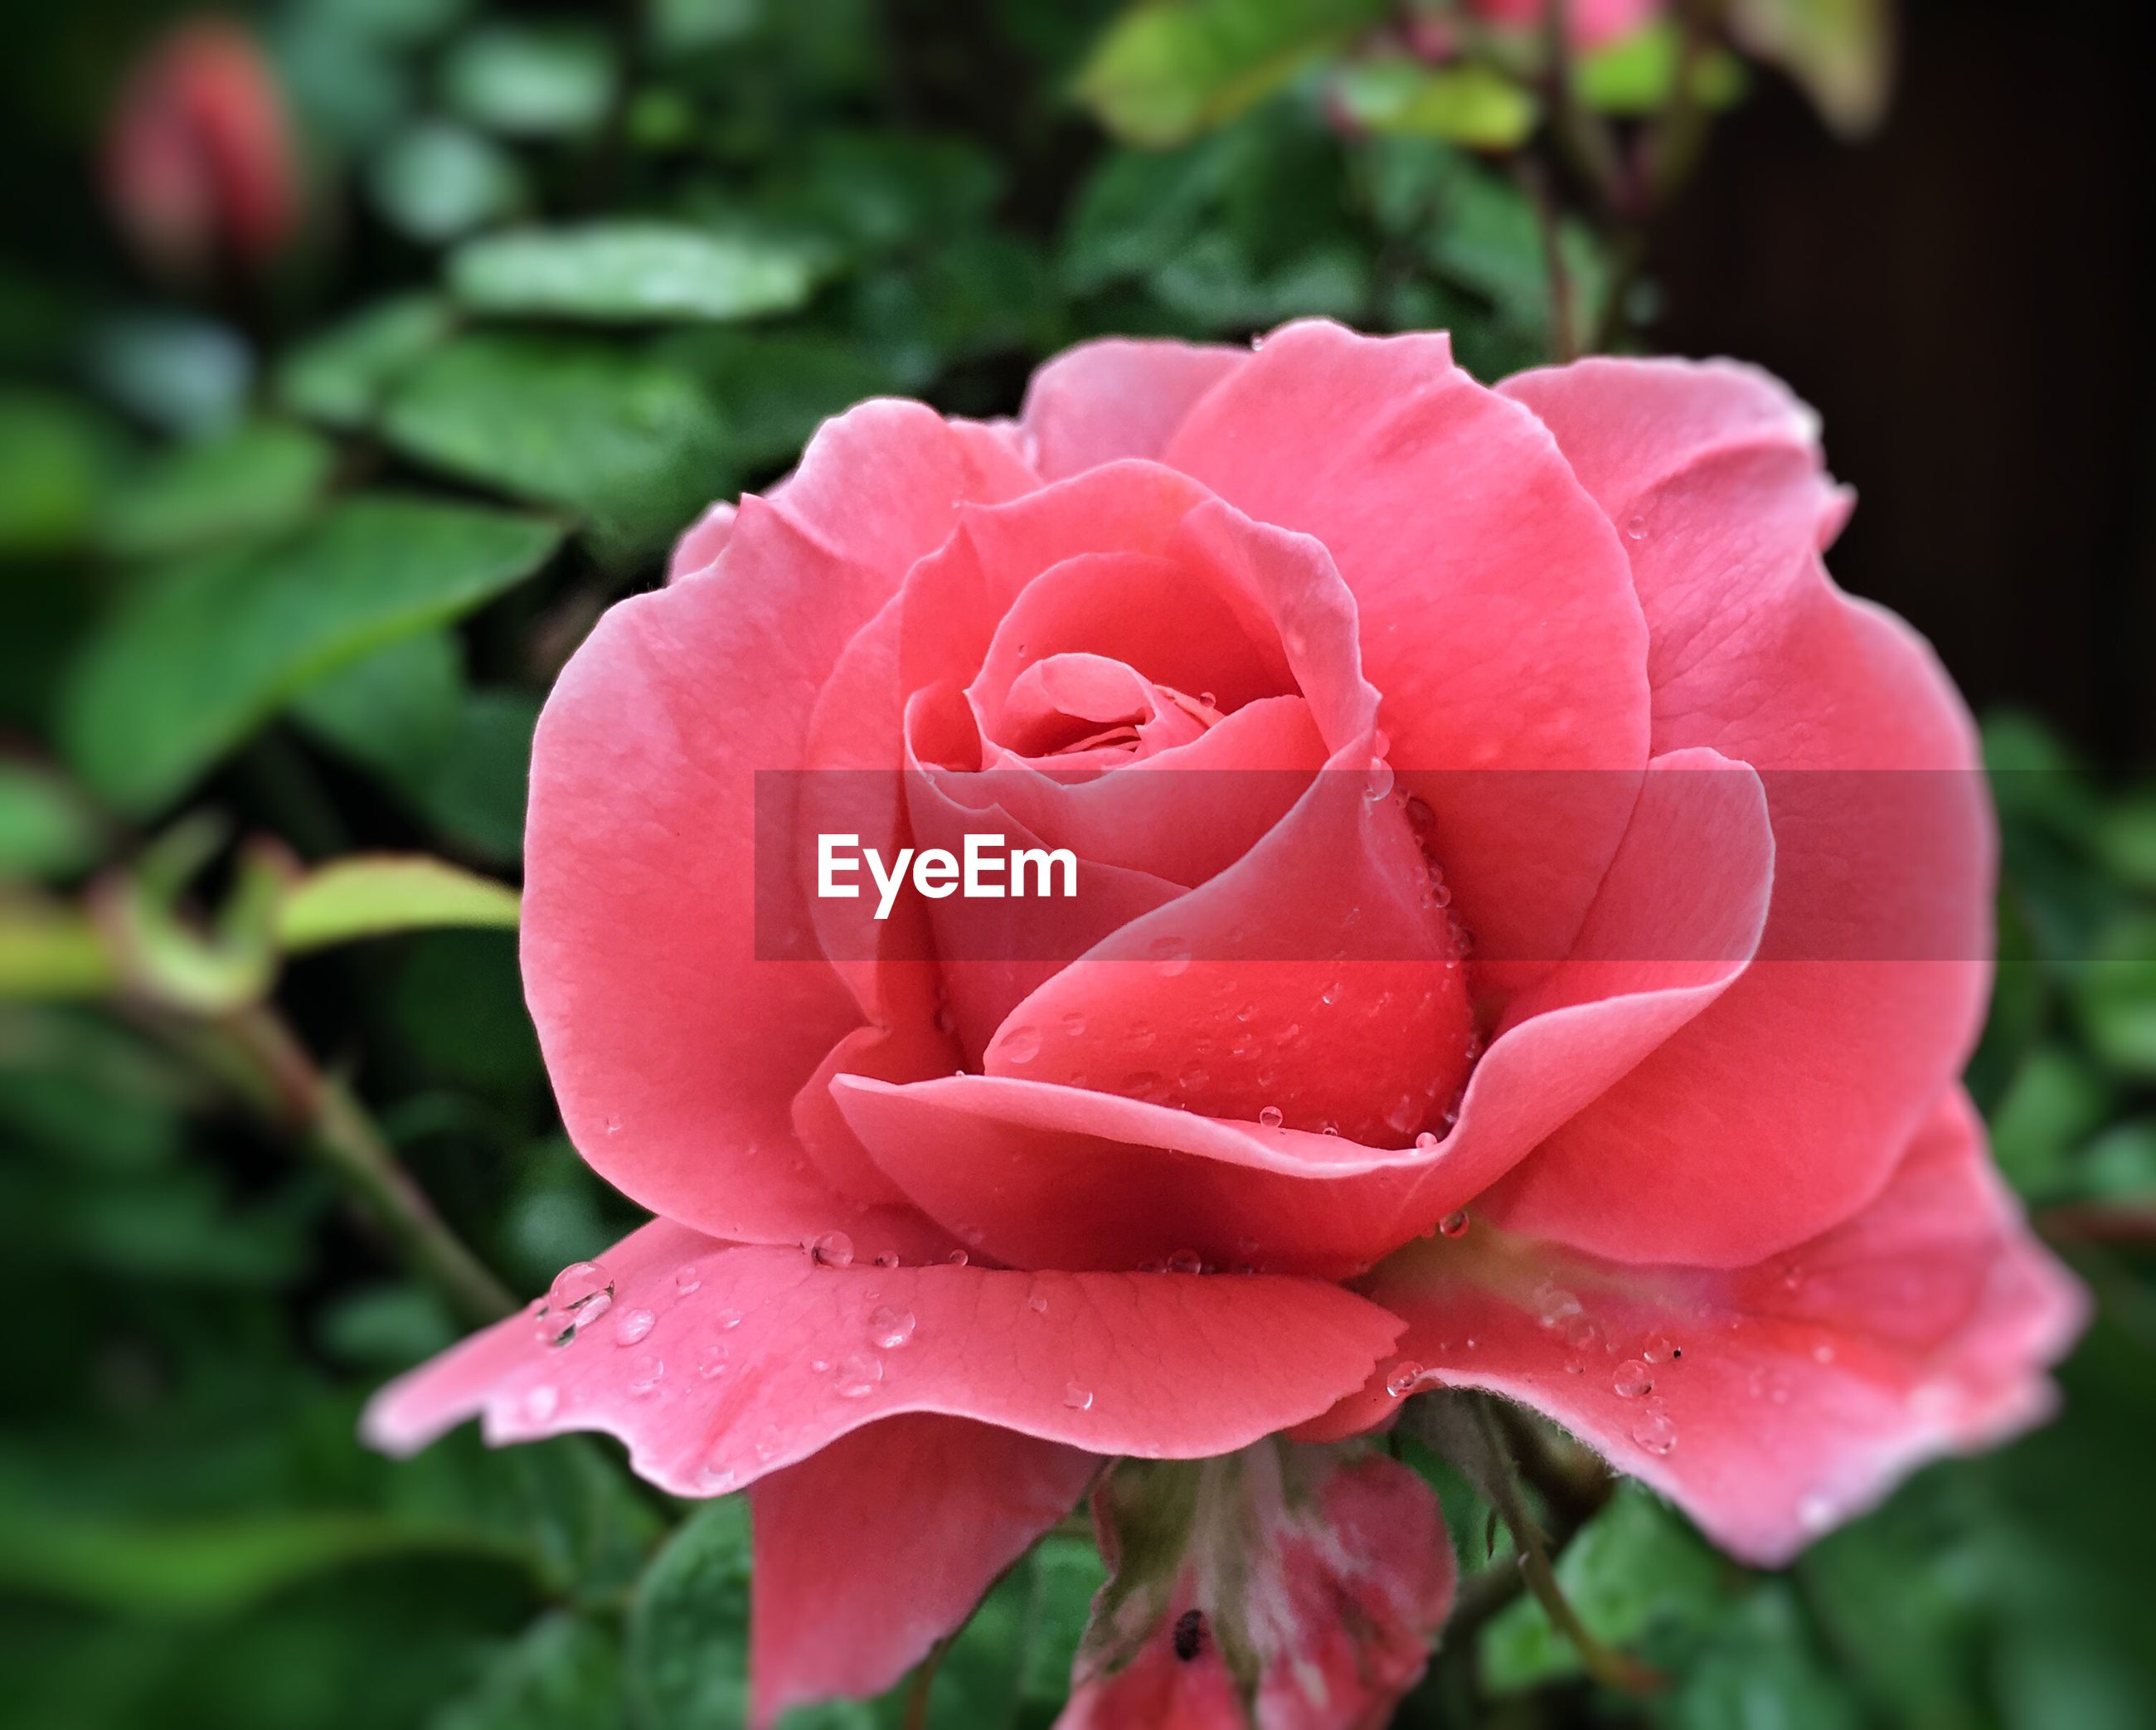 flower, petal, freshness, fragility, flower head, rose - flower, close-up, beauty in nature, growth, single flower, drop, focus on foreground, blooming, wet, water, nature, rose, pink color, red, plant